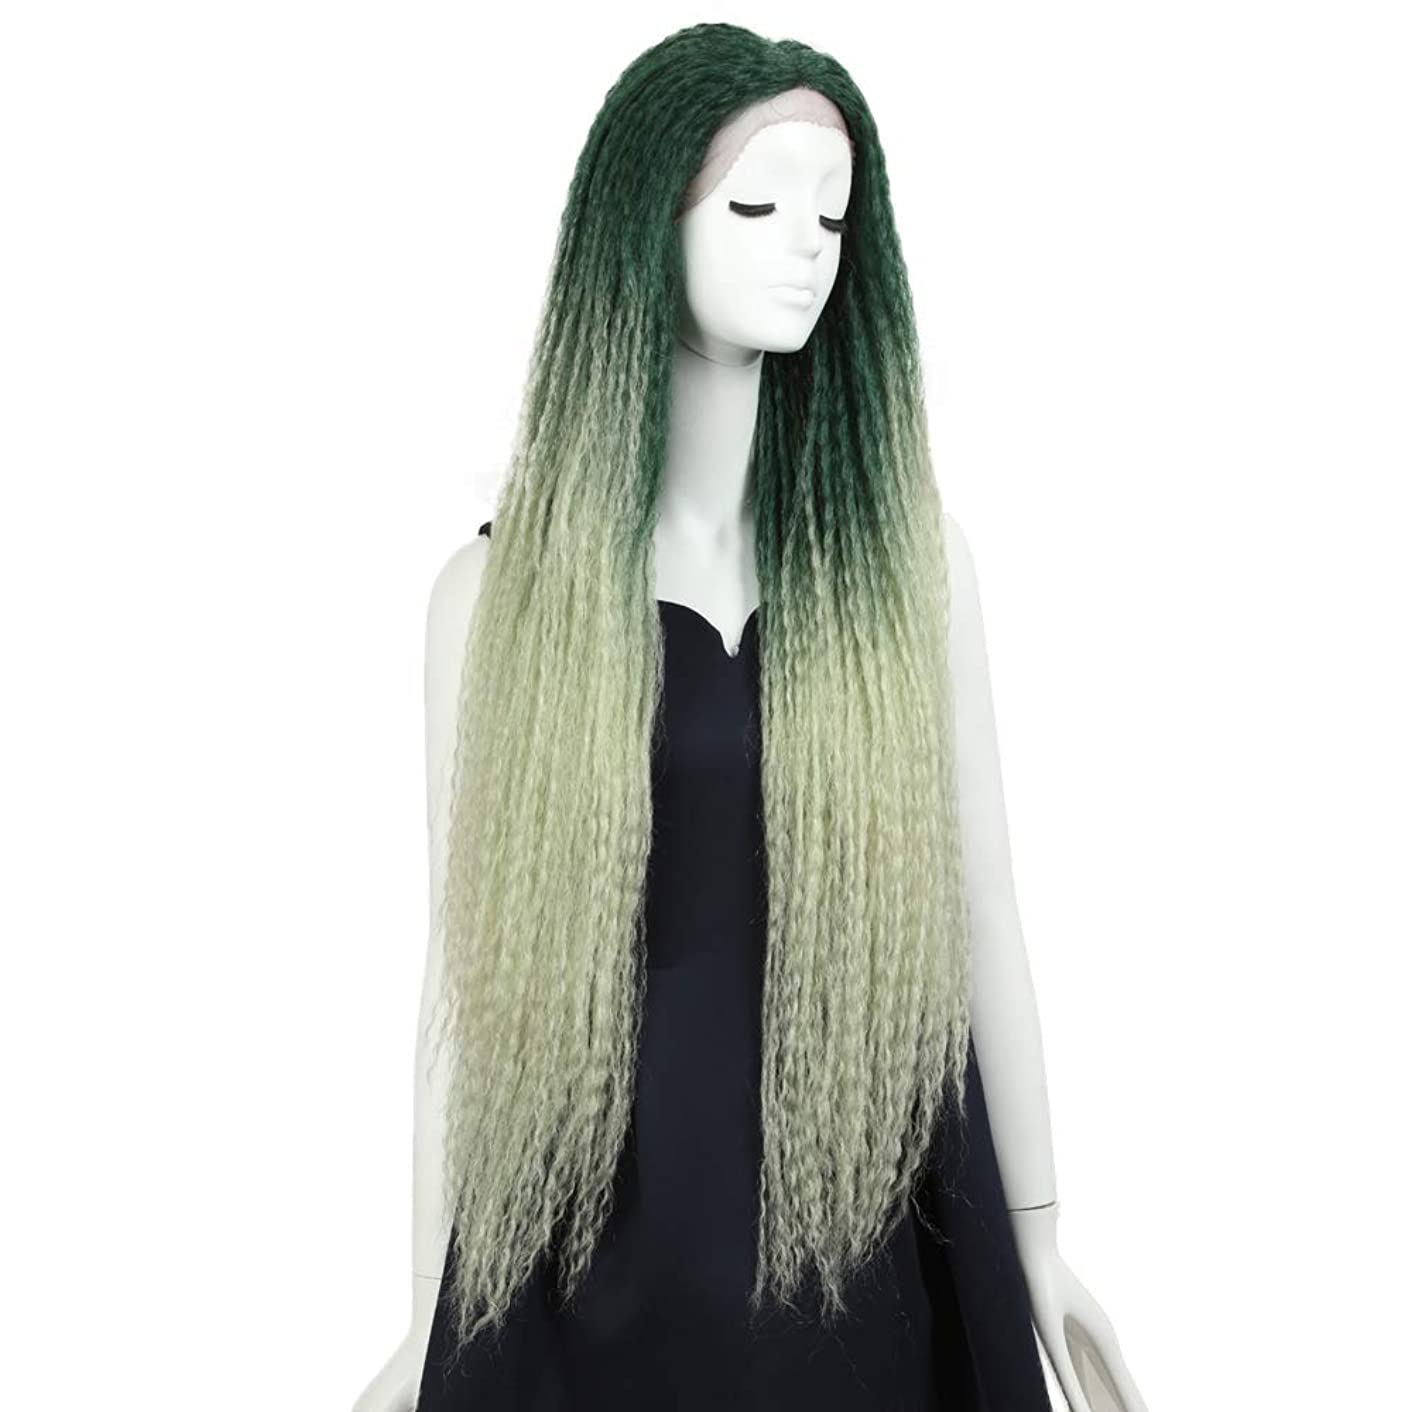 NOBLE MAXIN Dreadlock Hair Wig Long Dreadlock Braid Wig 38inches Lace Front Dreadlock Wig for Black Women (38inches, TT GREEN)